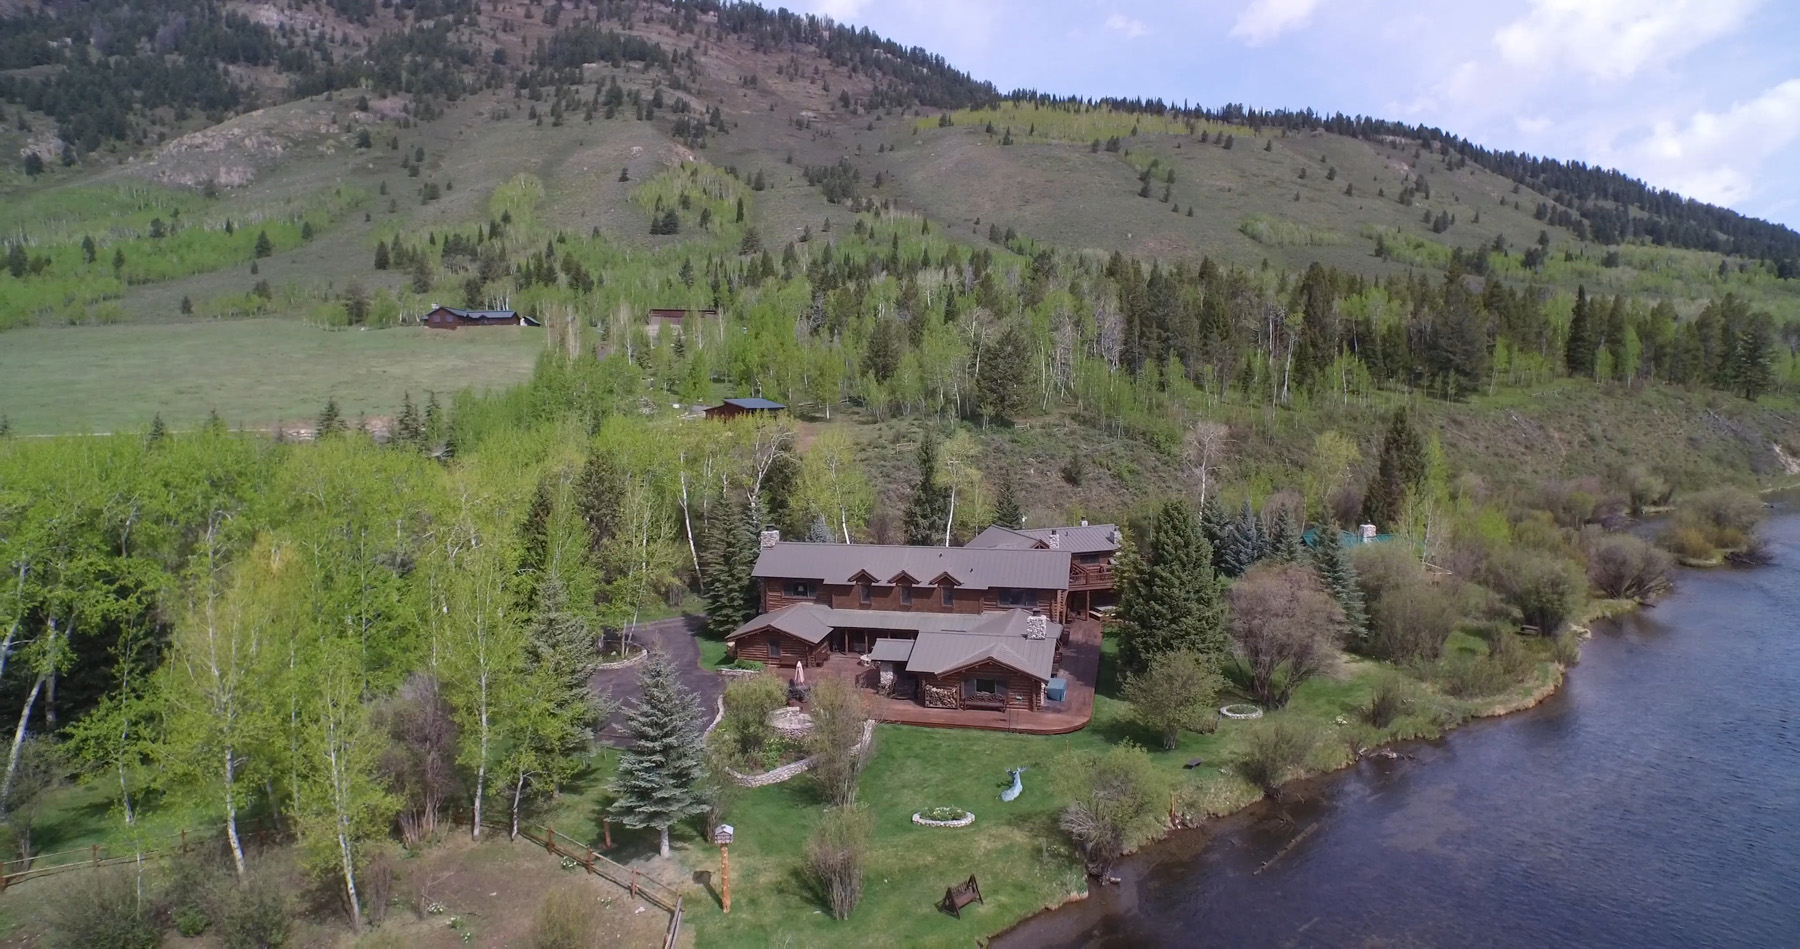 Maison unifamiliale pour l Vente à The Historic Lazy Moose Ranch 2455 N Fish Creek Road Wilson, Wyoming, 83014 Jackson Hole, États-Unis